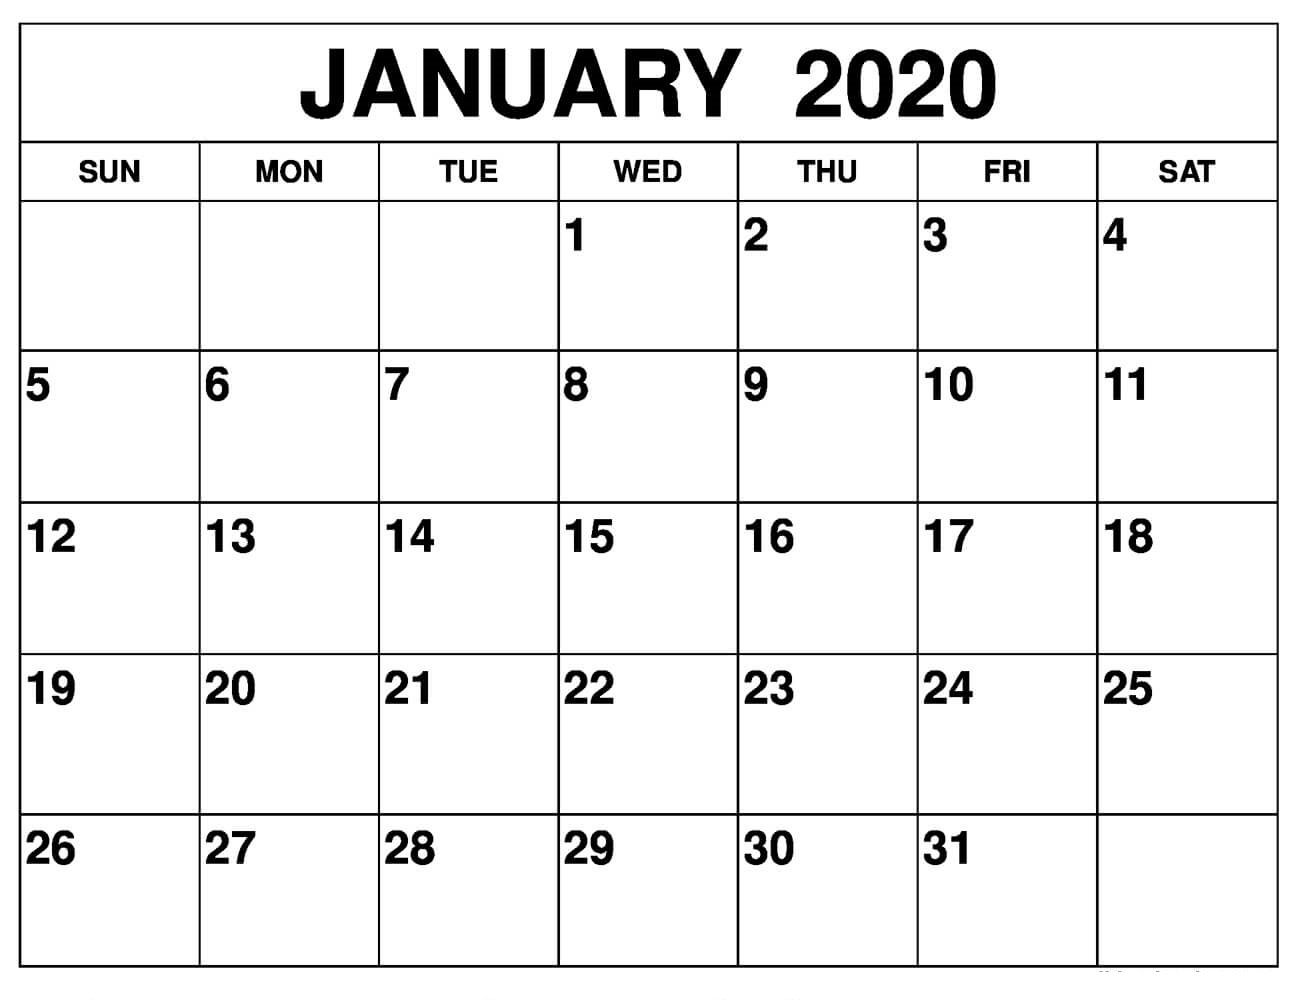 January 2020 Calendar Printable